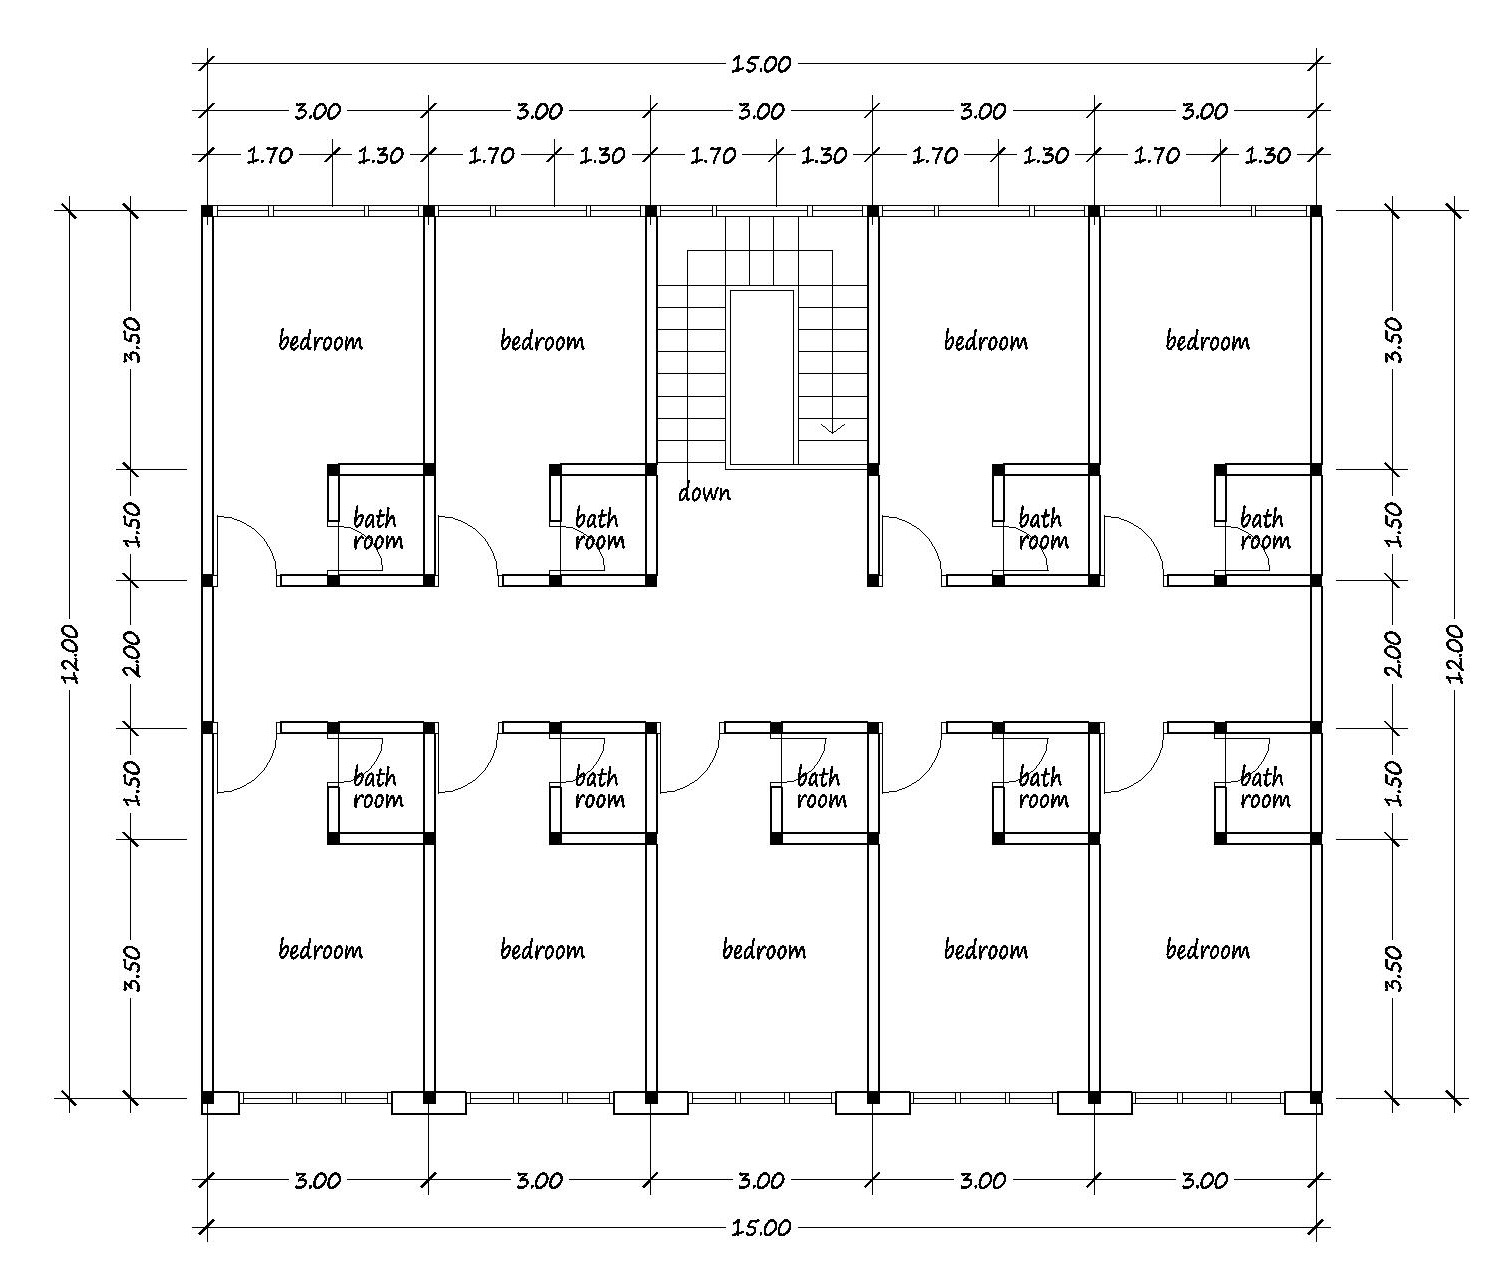 House plans for you plans image design and about house for House plan designs